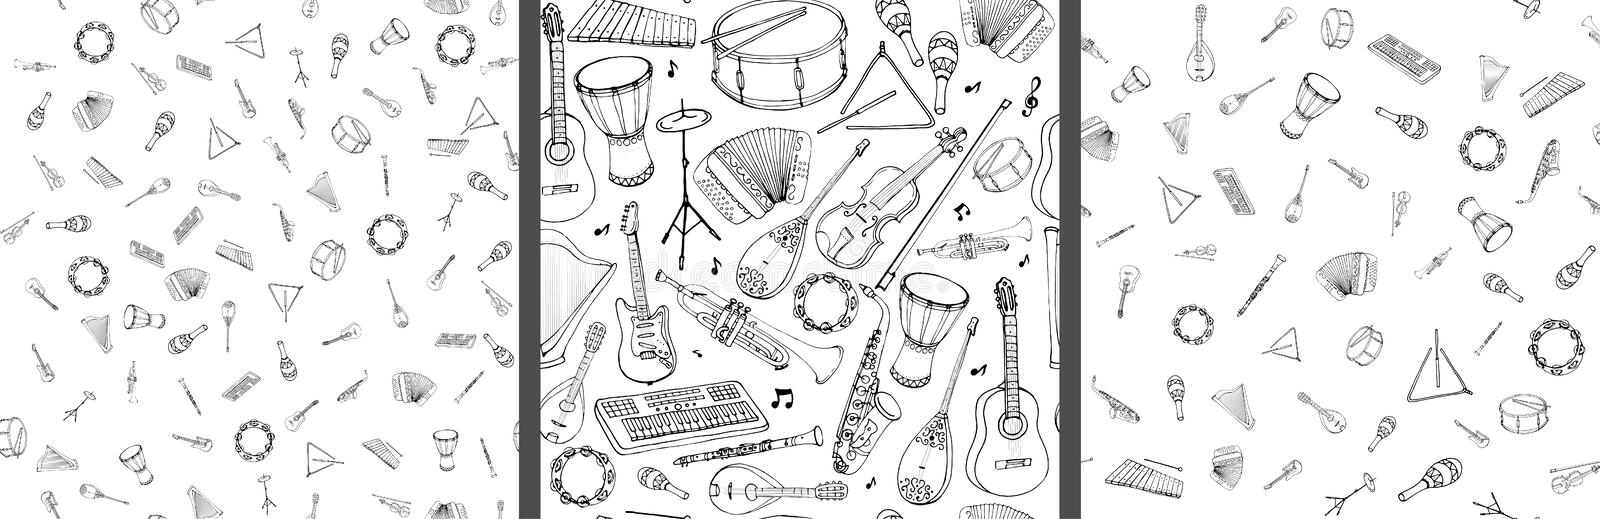 Vector seamless pattern of musical instruments. Linear hand drawn illustration in cartoon style vector illustration